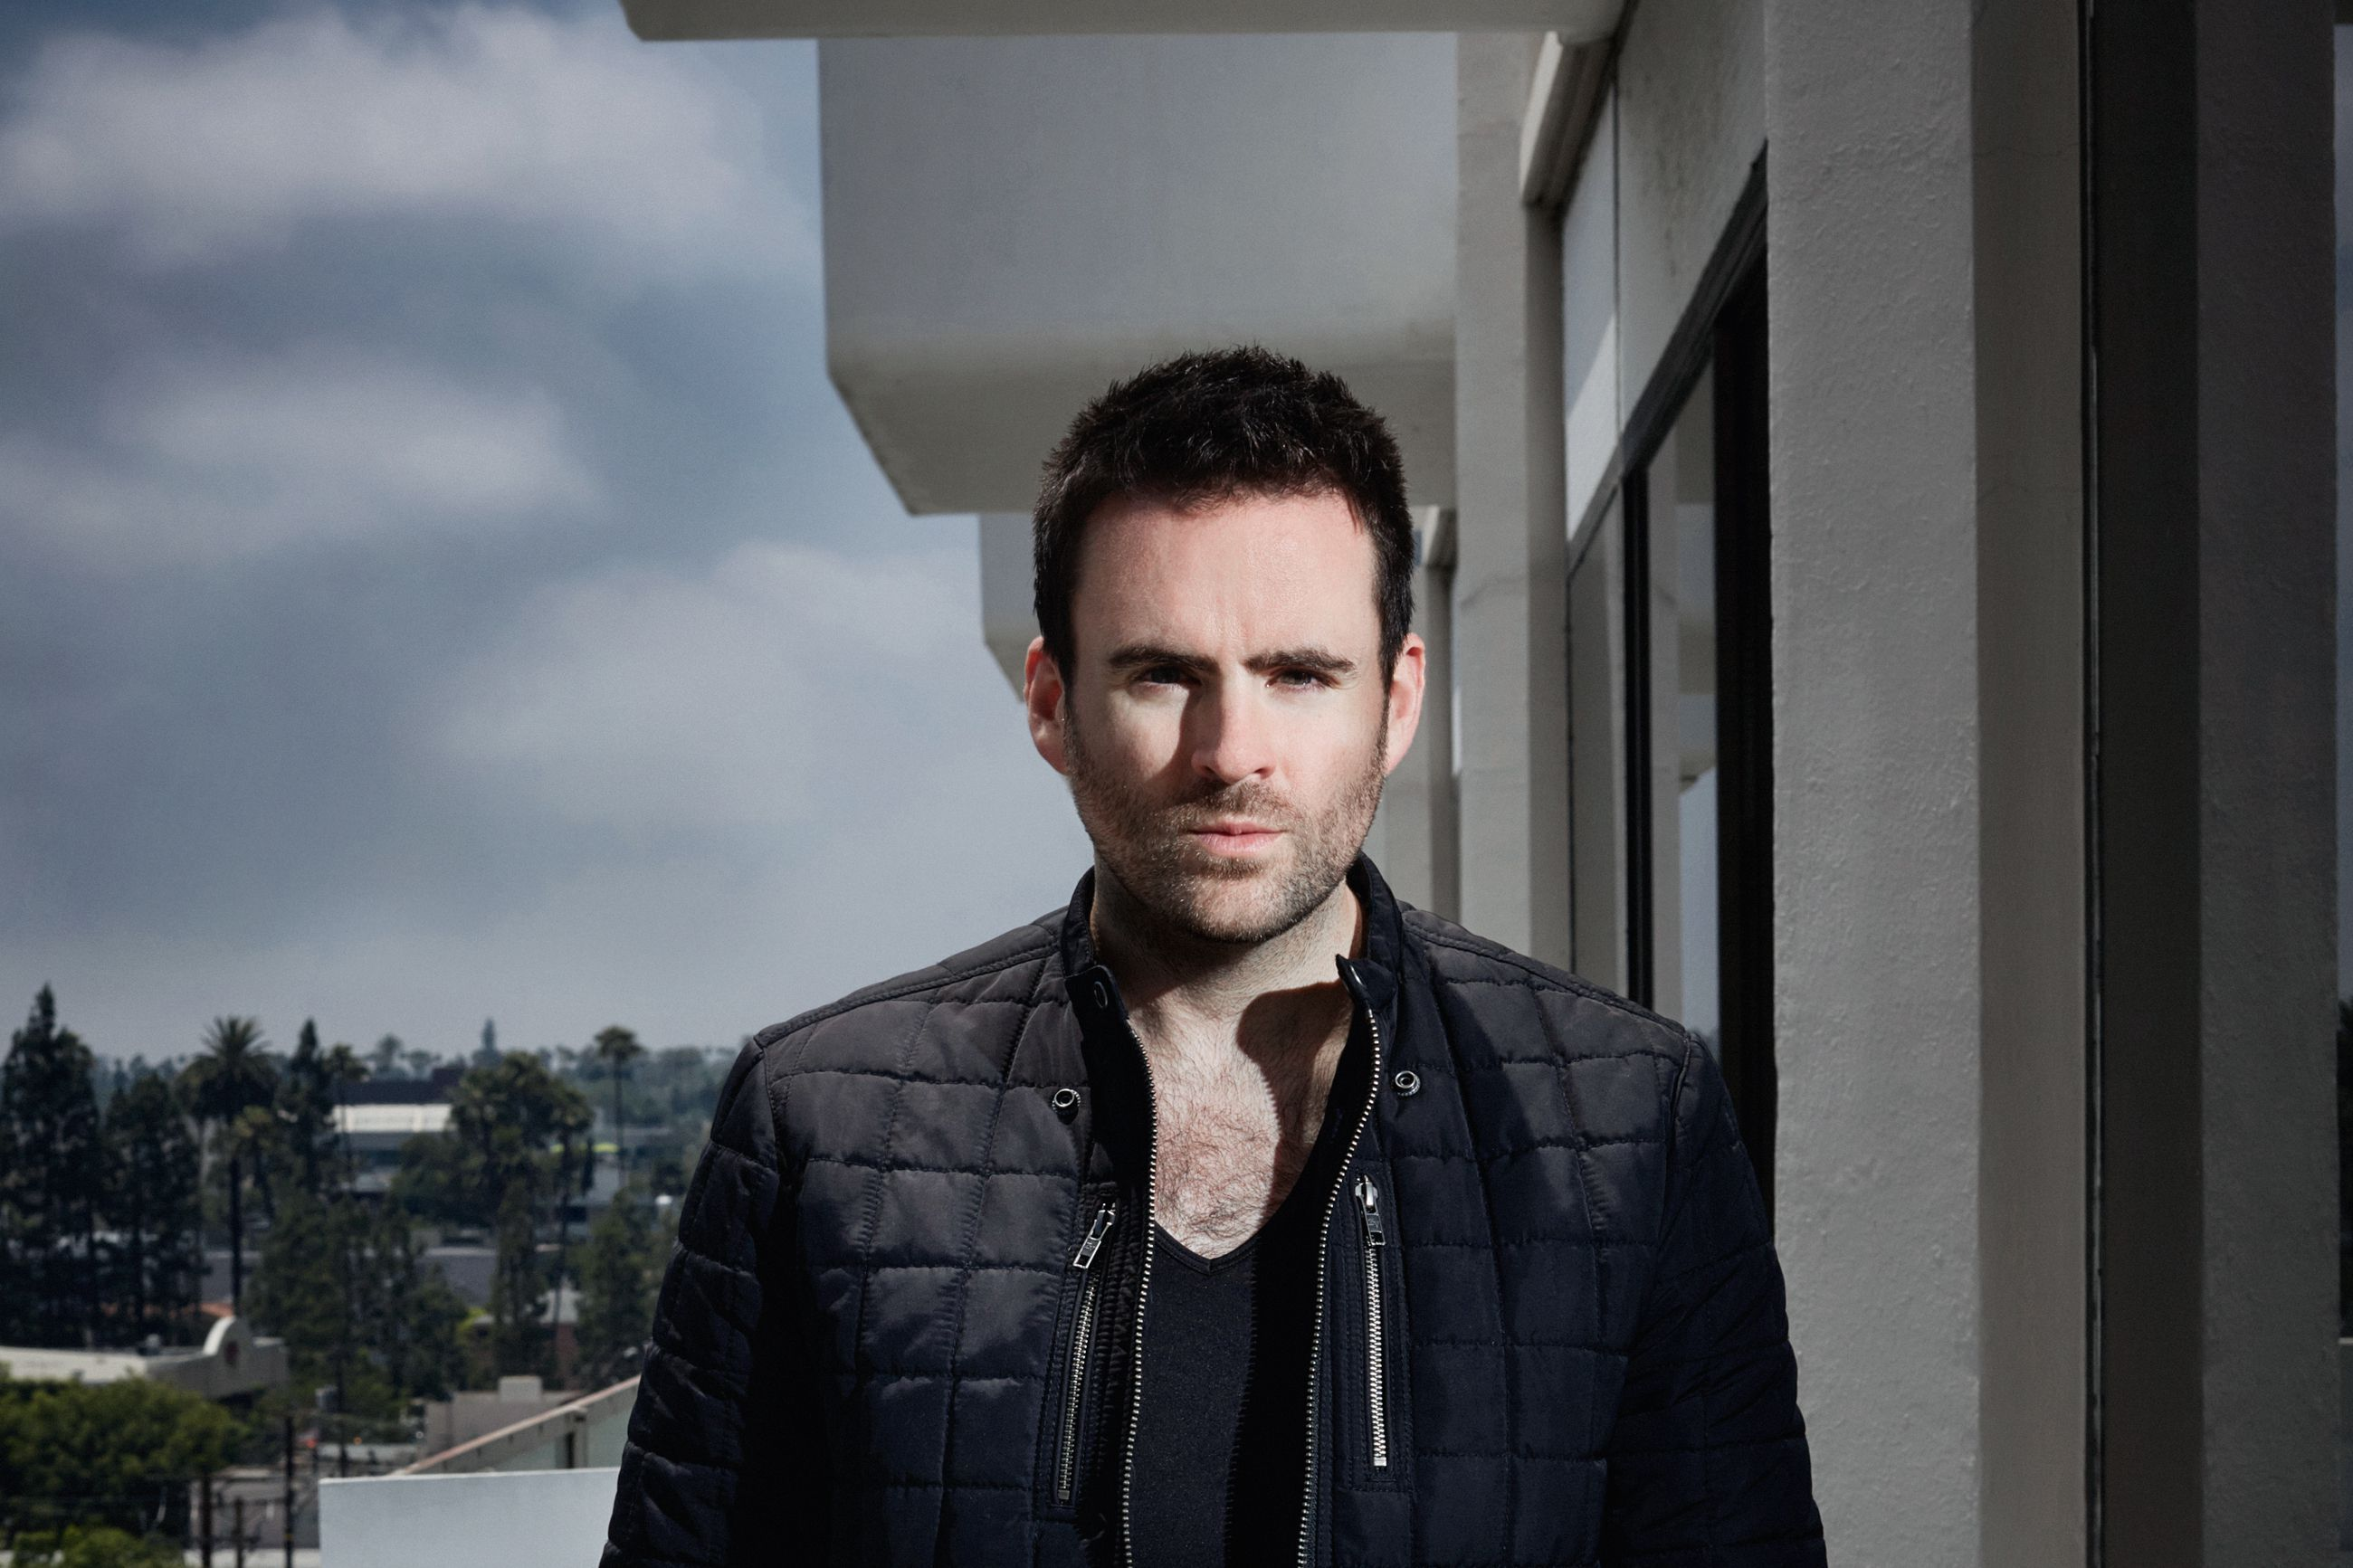 gareth emery 4k widescreen desktop wallpaper 1412